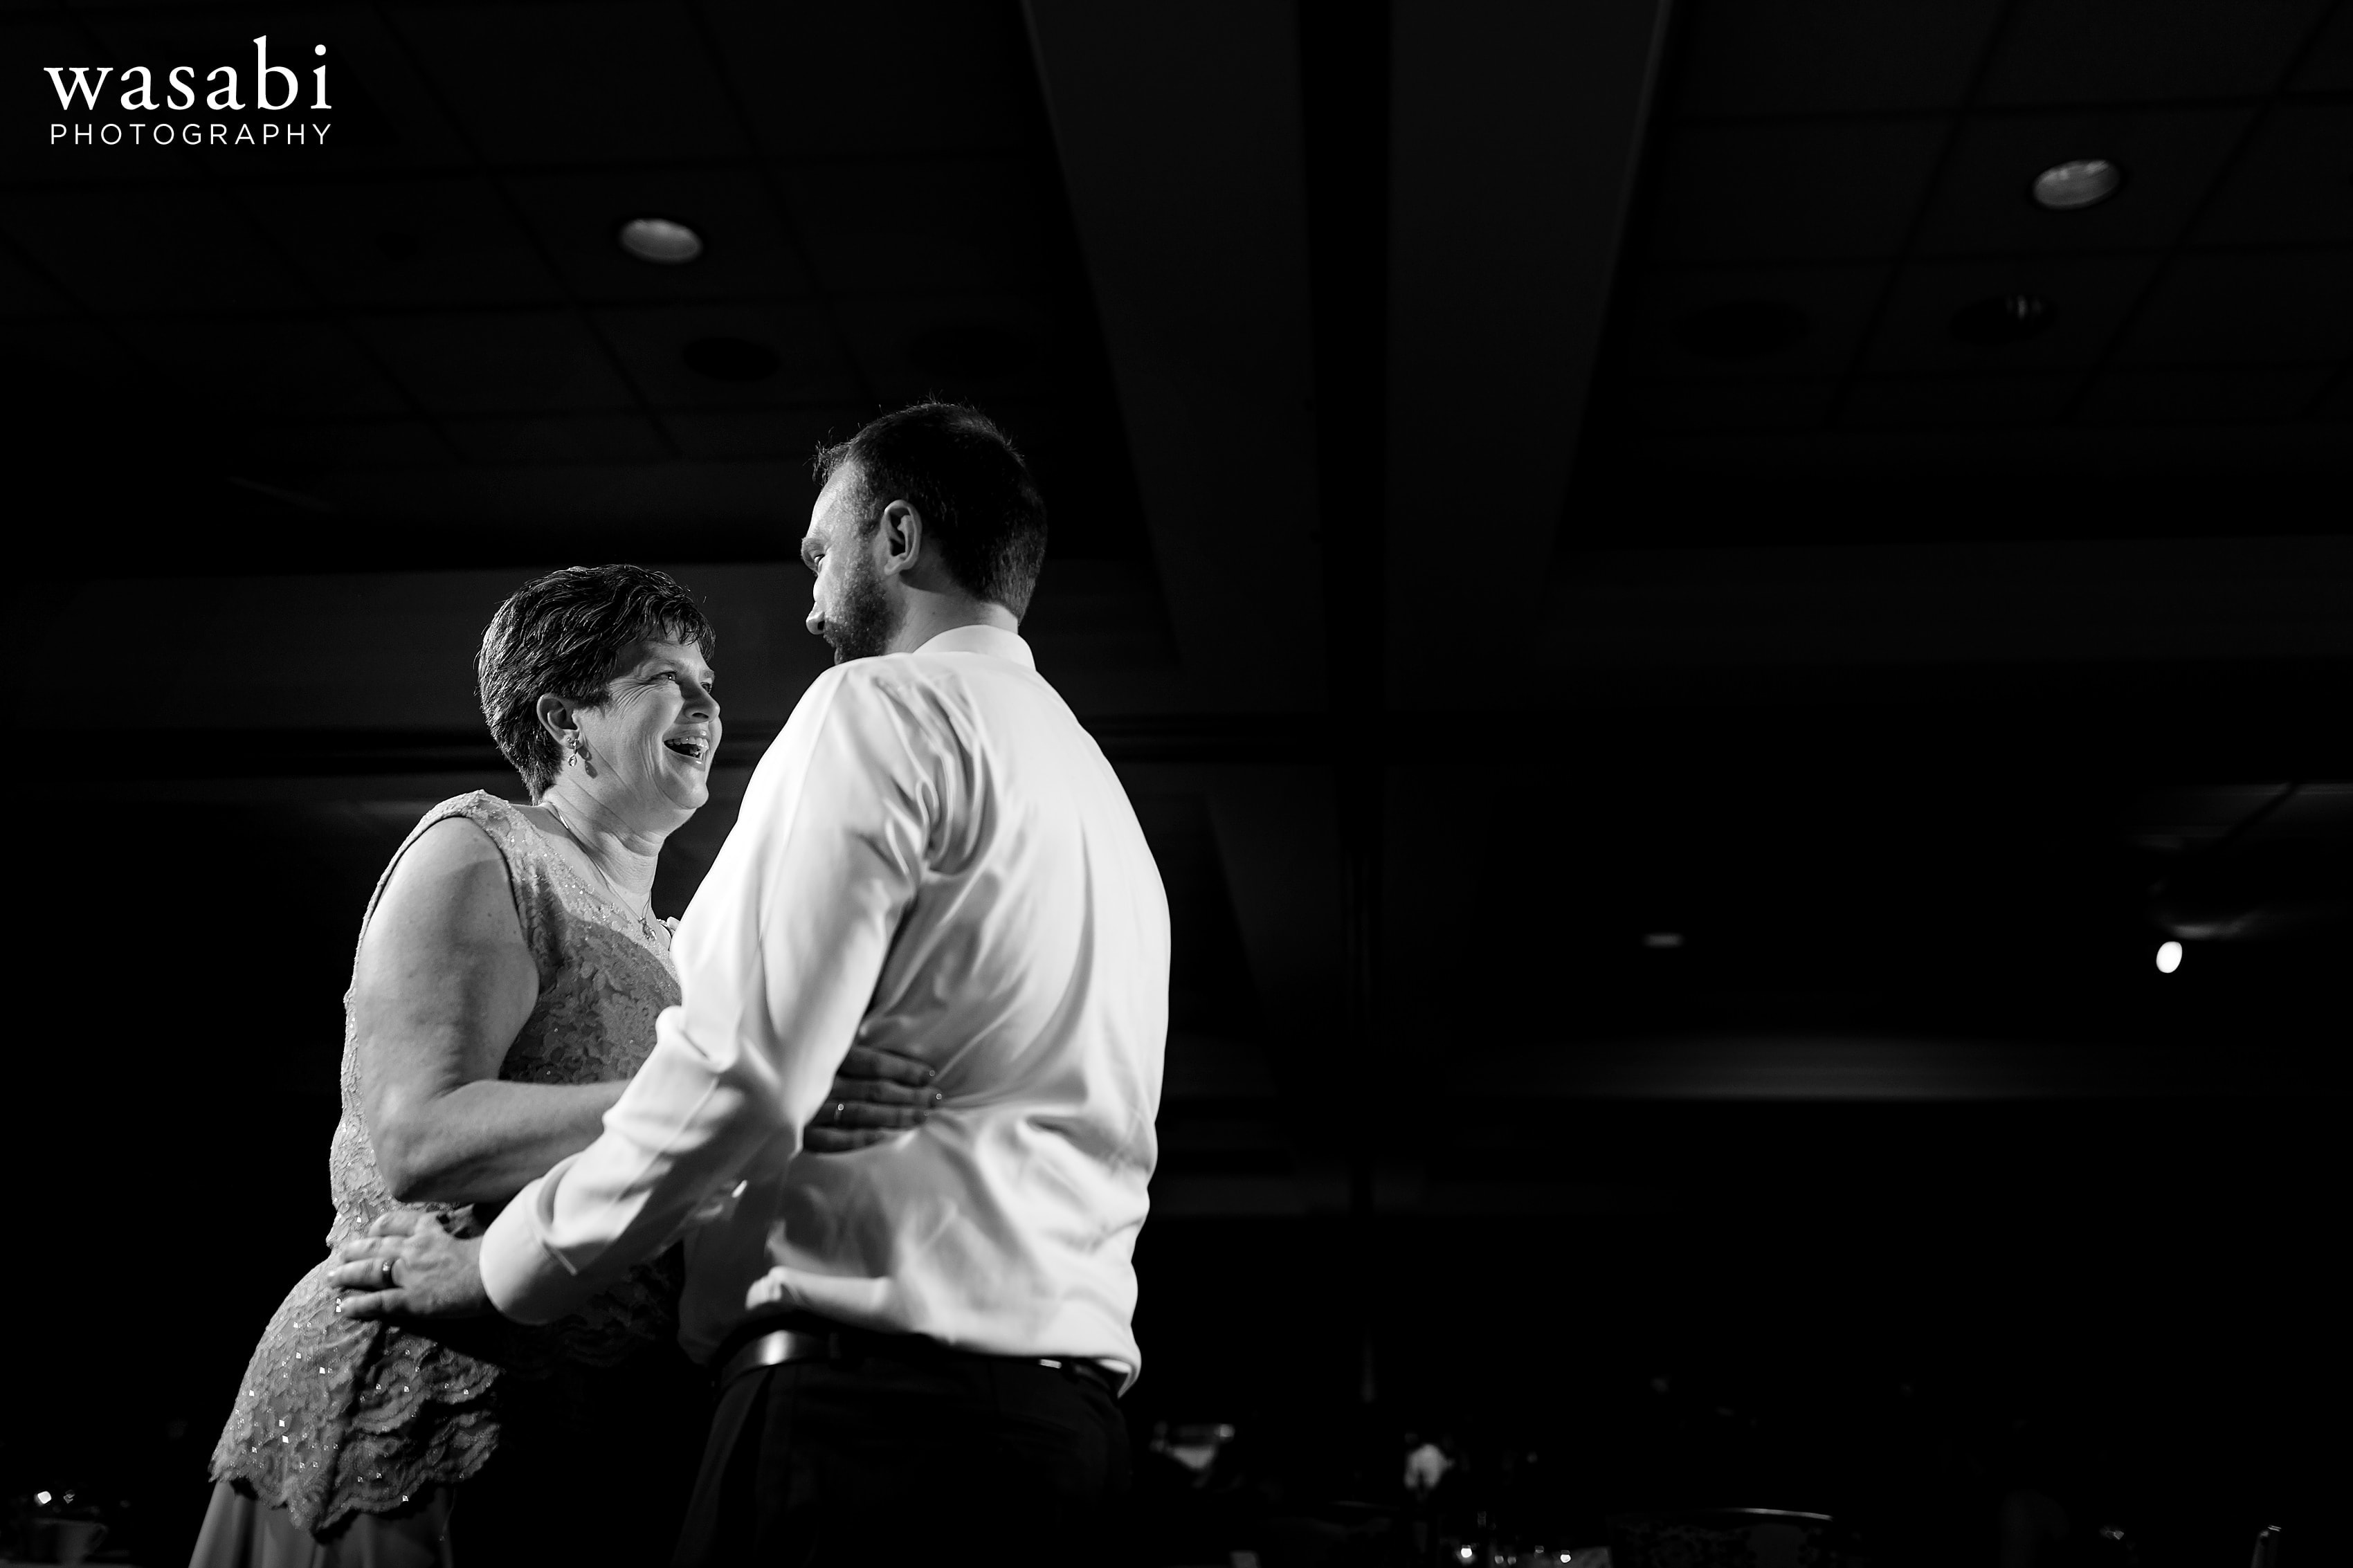 groom shares a first dance with his mother during a wedding reception at Eberhard Center in downtown Grand Rapids